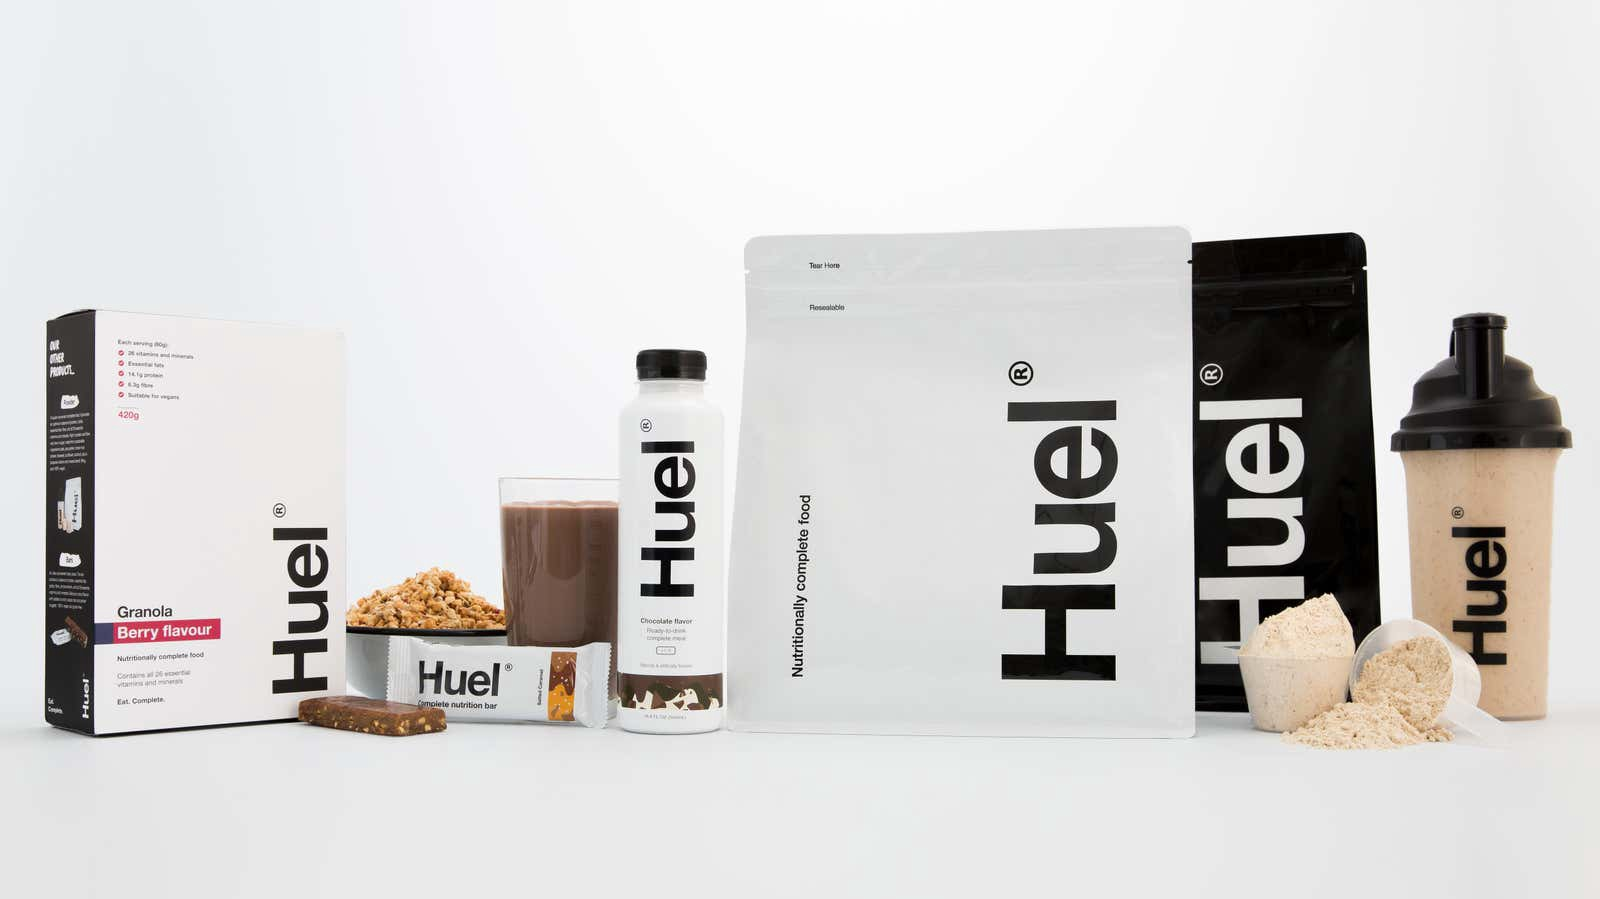 A range of Huel products, including powders, shakes, bars and a reusable container.